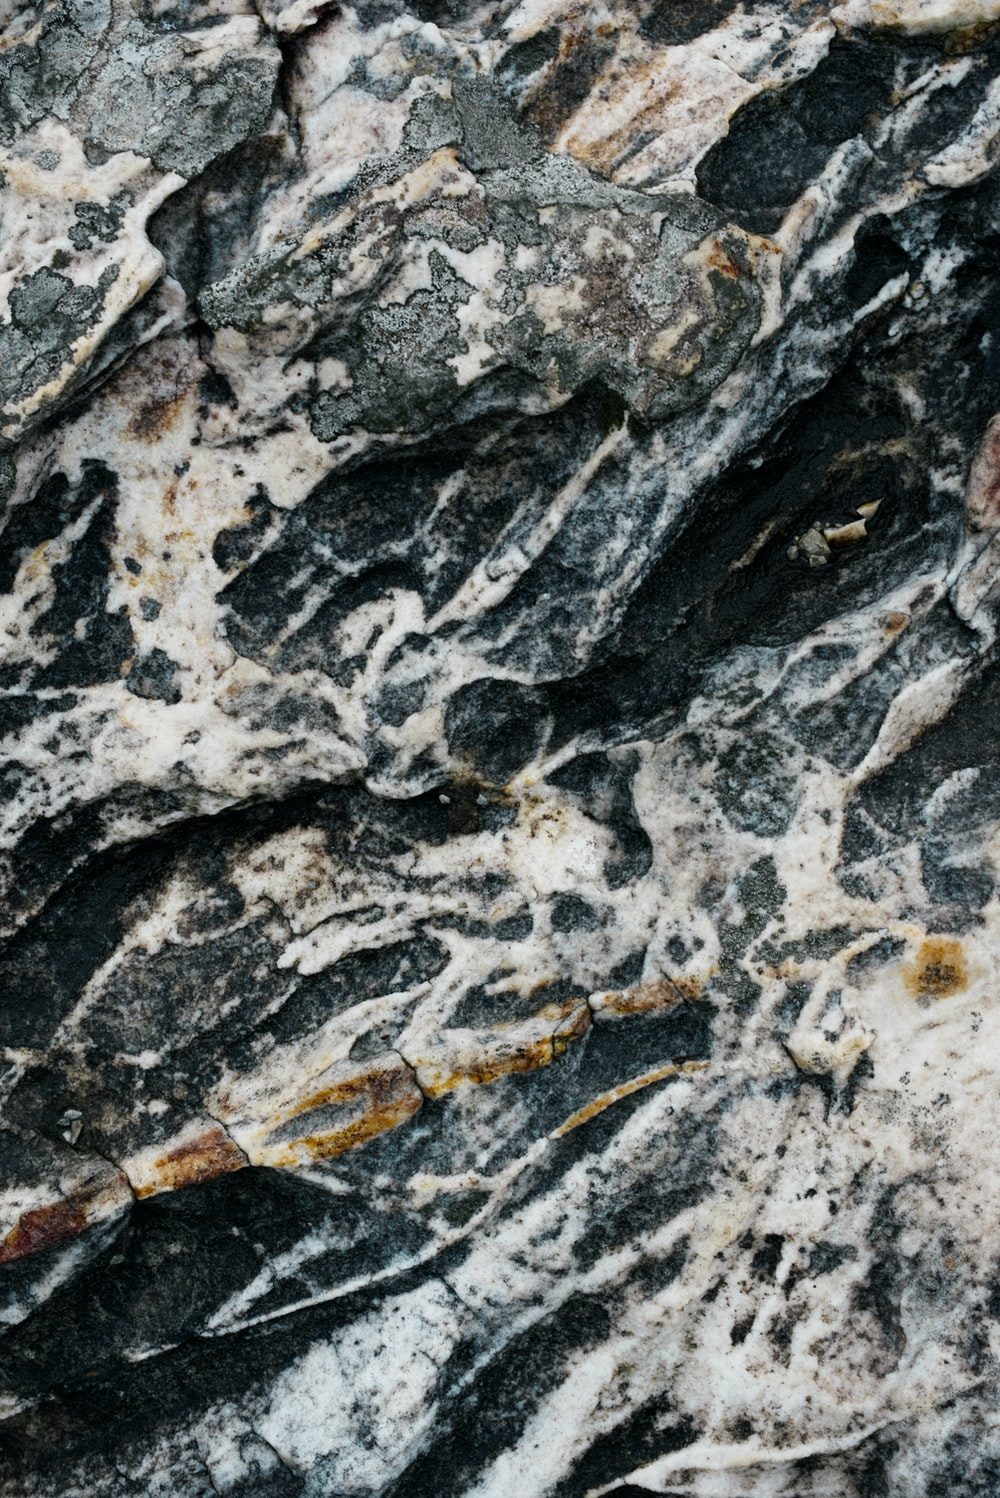 white and black rock formation